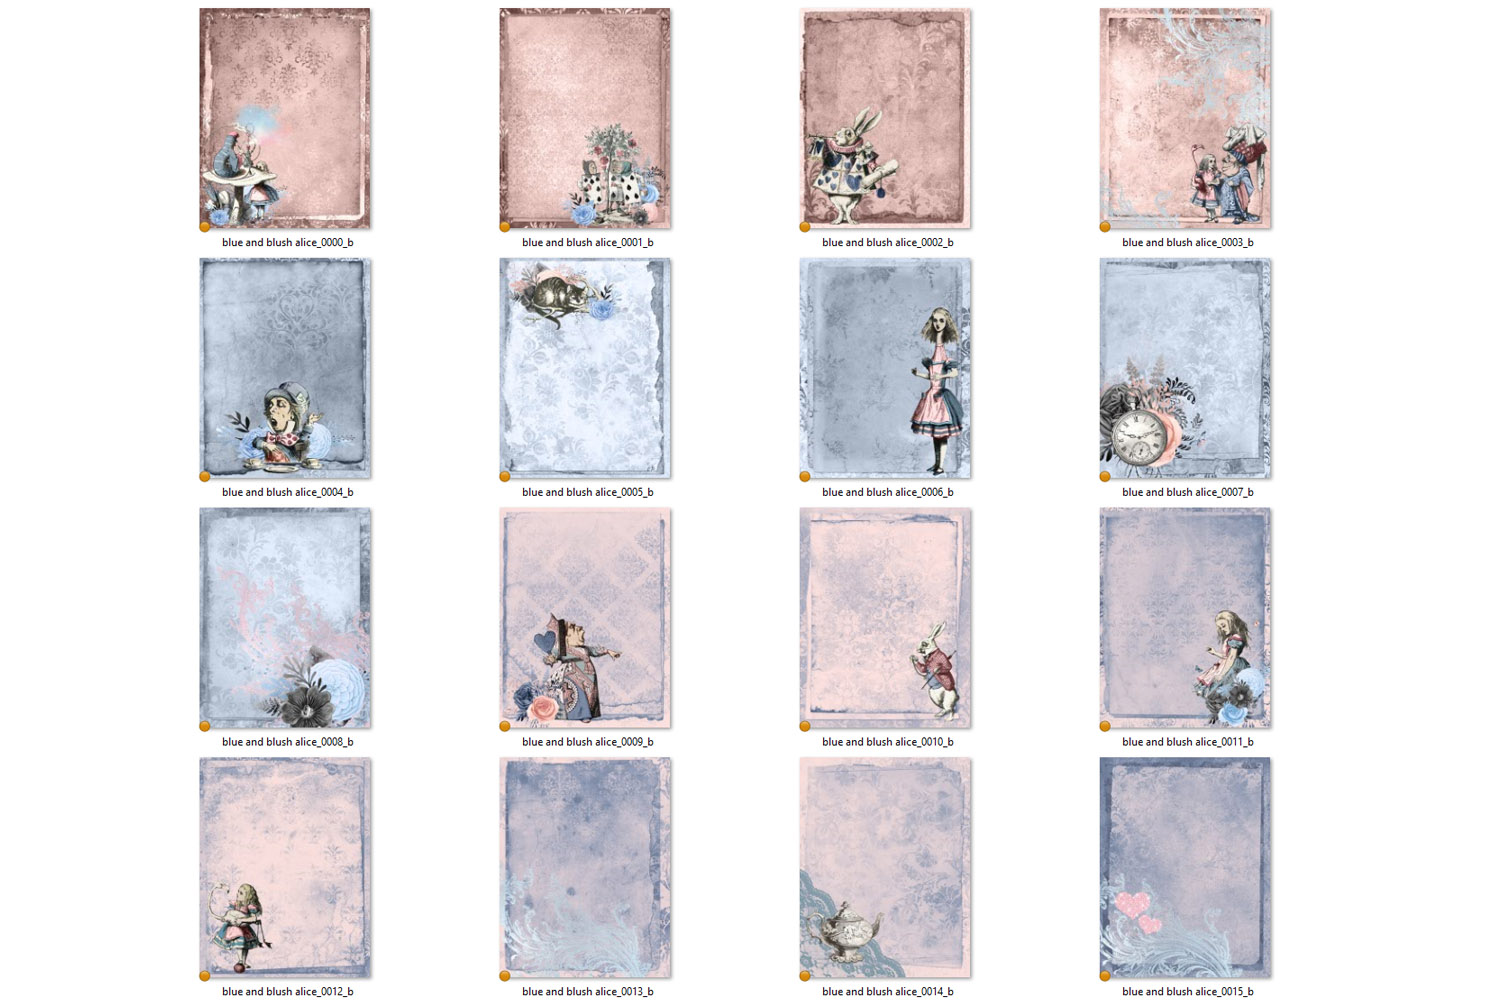 Dusty Blue and Blush Pink Alice in Wonderland Journal Paper example image 4